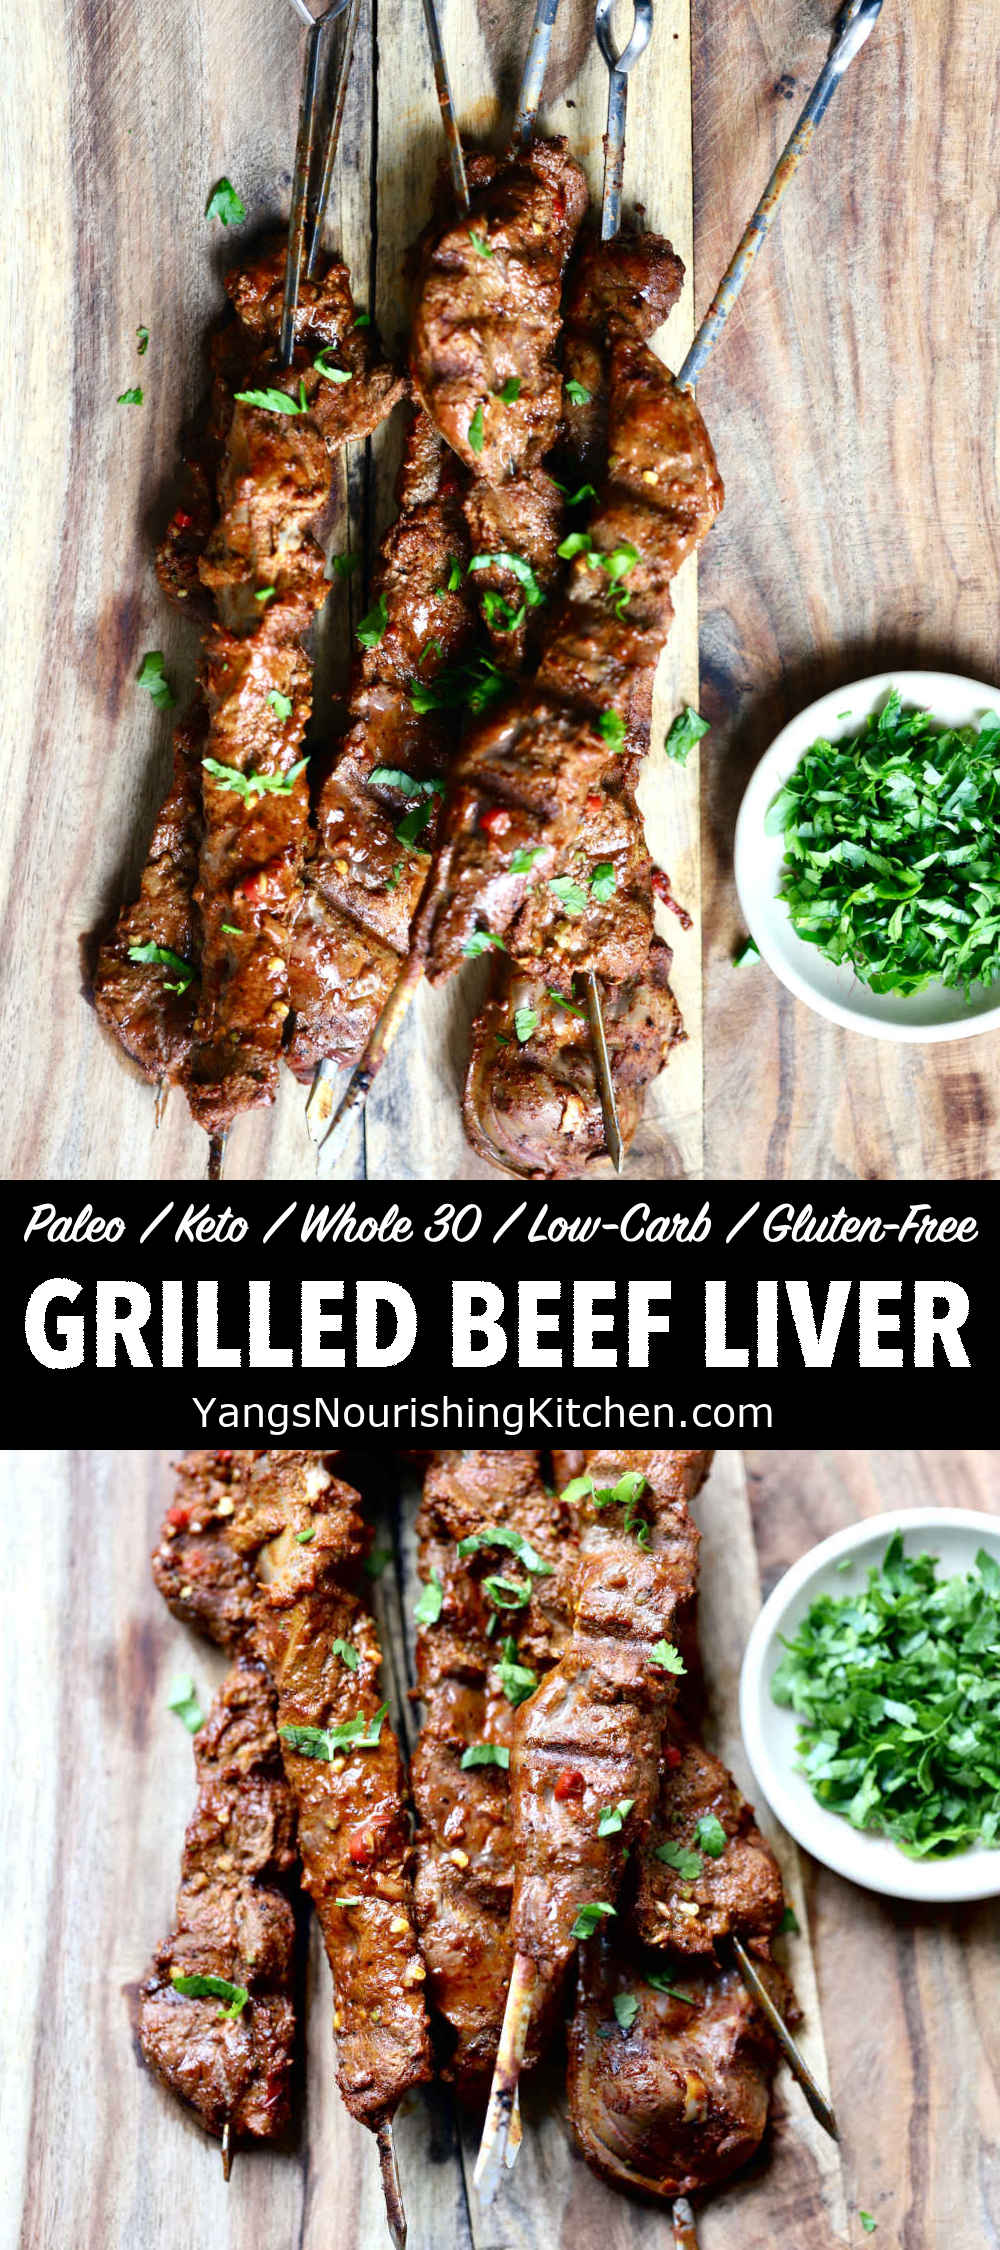 Grilled Beef Liver (Keto, Paleo, Low-Carb)